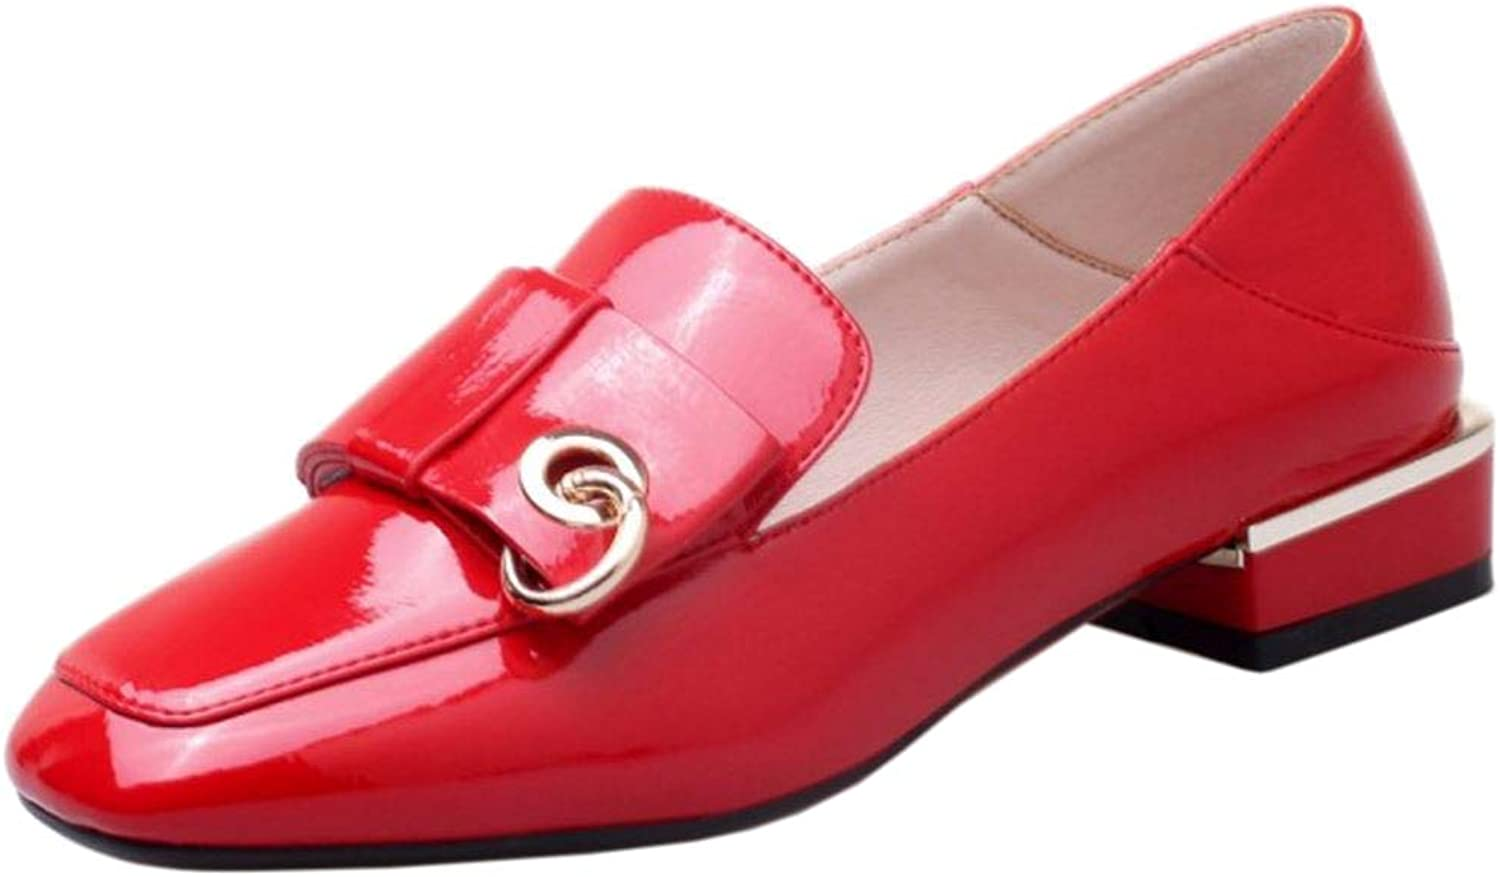 Melady Women Fashion Loafers Flats Pumps Bow